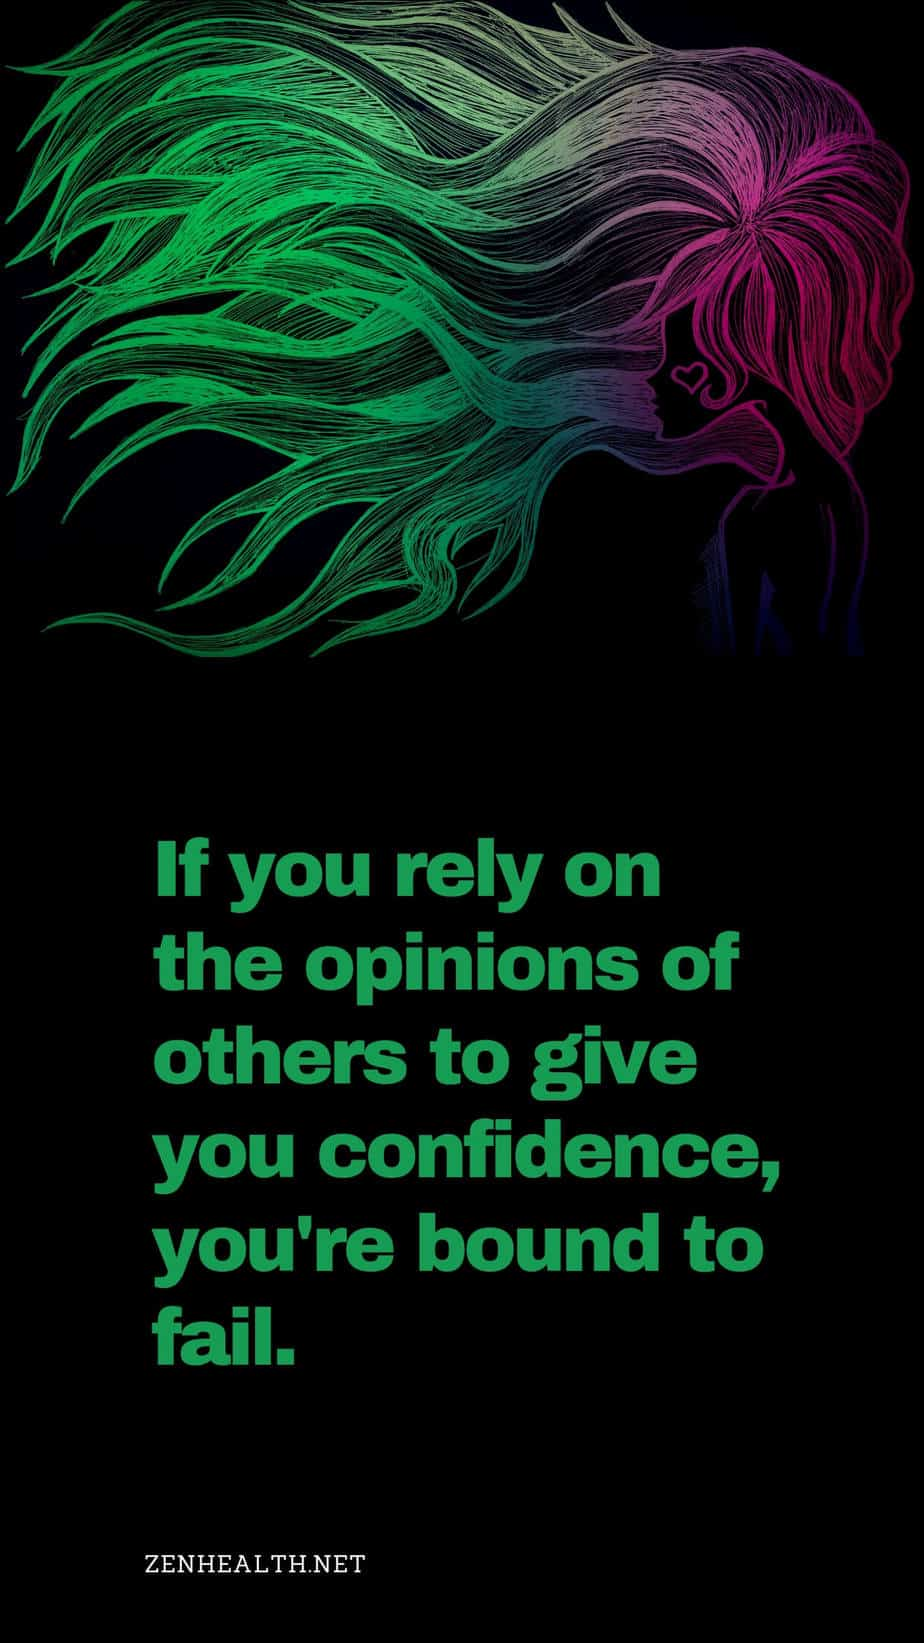 If you rely on the opinions of others to give you confidence, you're bound to fail.